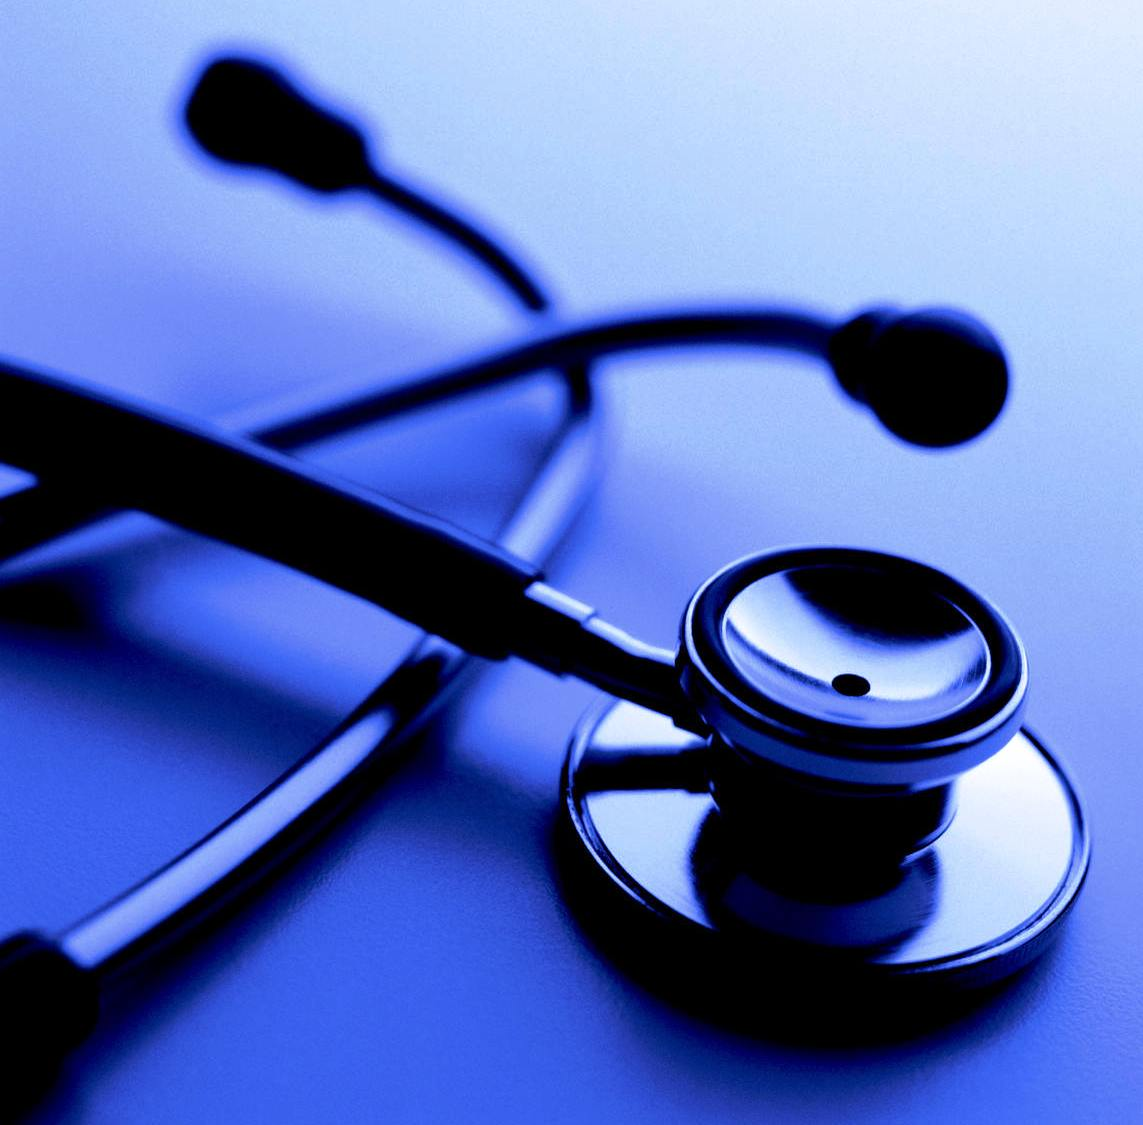 Stethoscope Wallpapers - Wallpaper CaveDoctor Stethoscope Images Hd